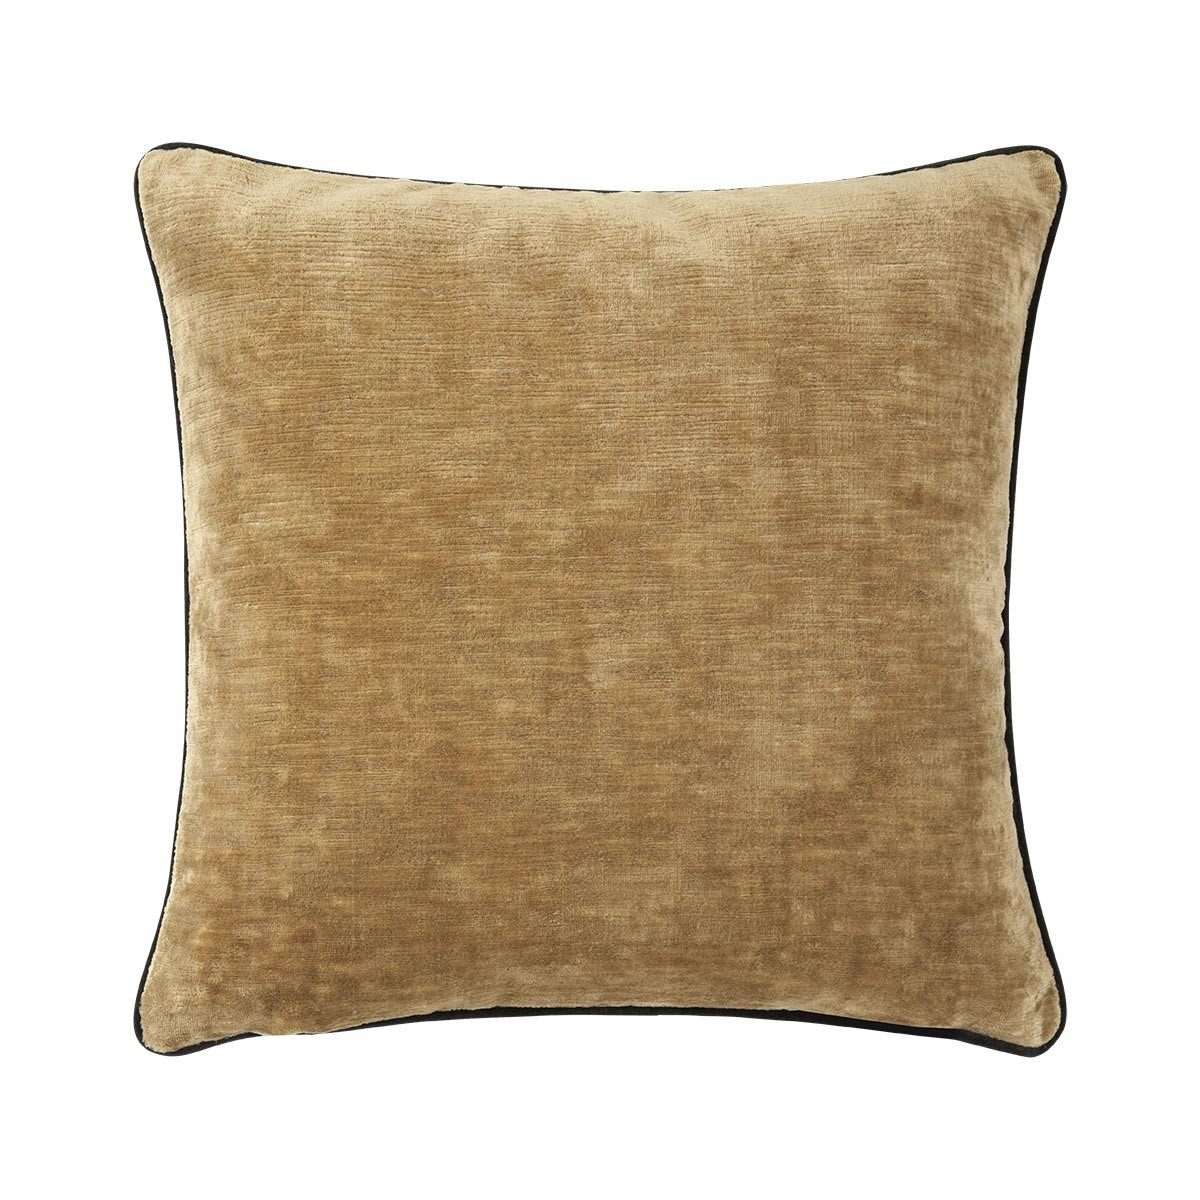 Boromee Daim Decorative Pillow by Iosis